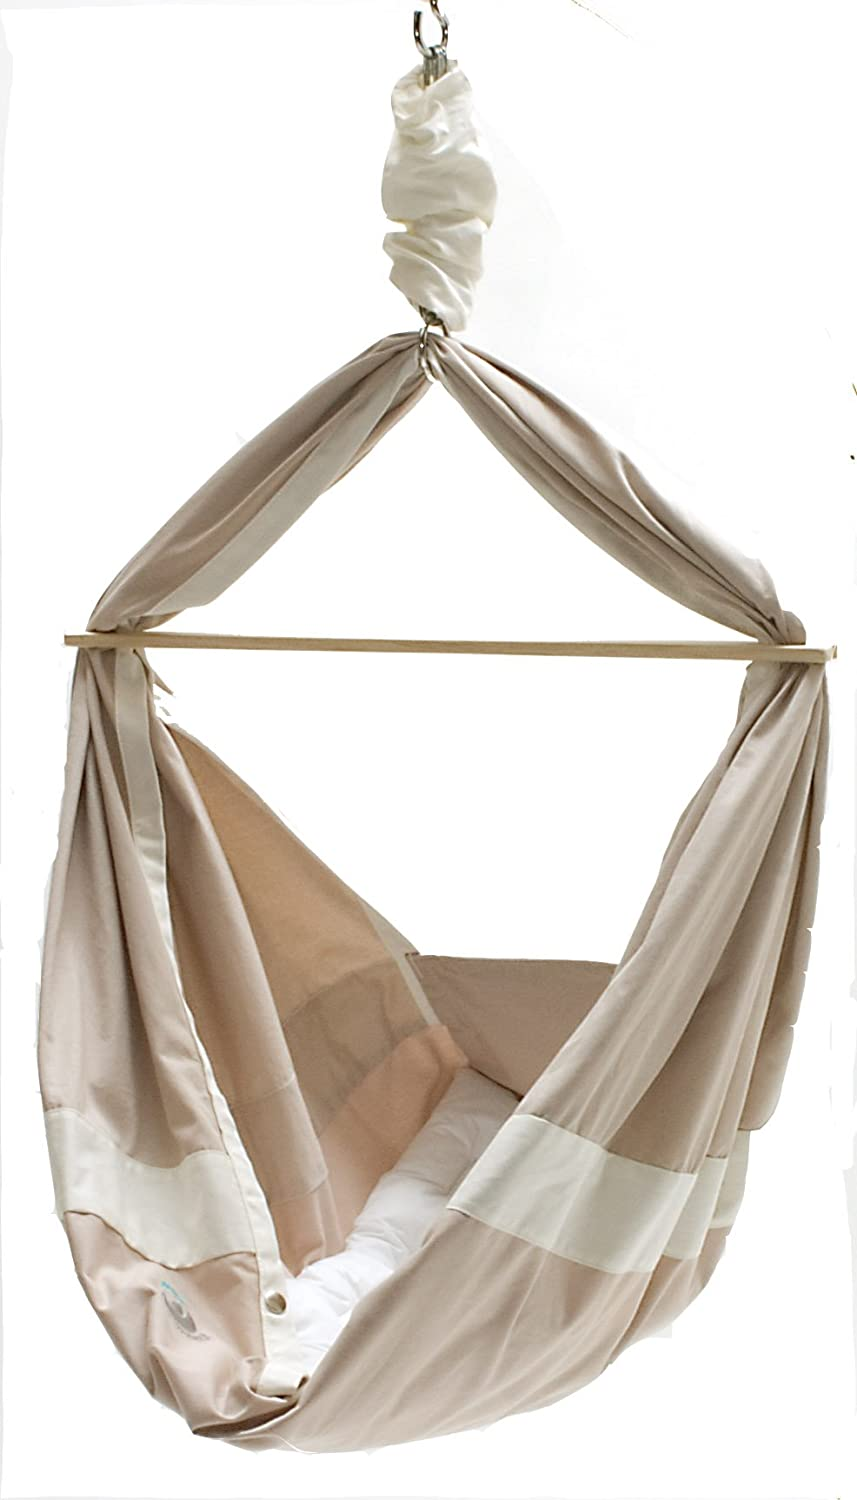 miyo baby hammock   sand and cream  amazon co uk  baby  rh   amazon co uk